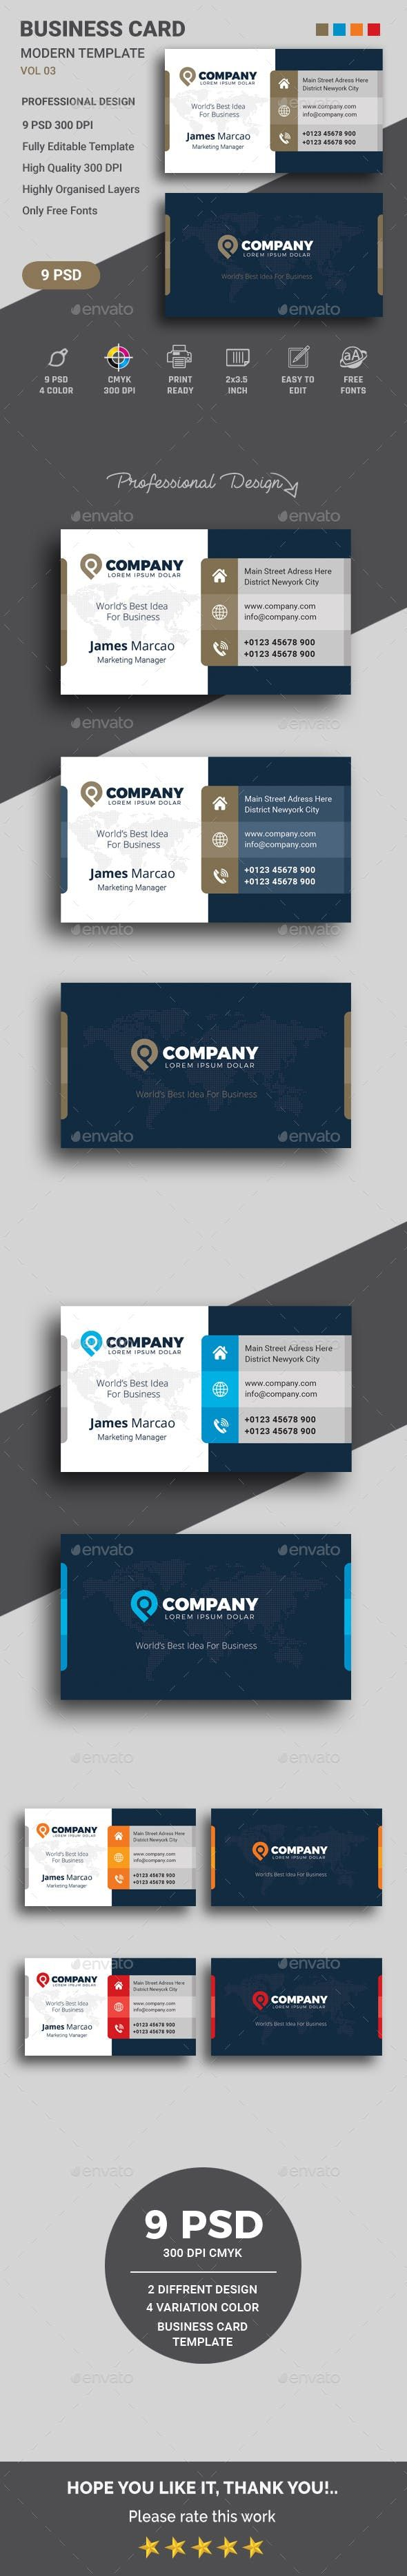 Business Card Business Card Photoshop Free Business Card Templates Lawn Care Business Cards